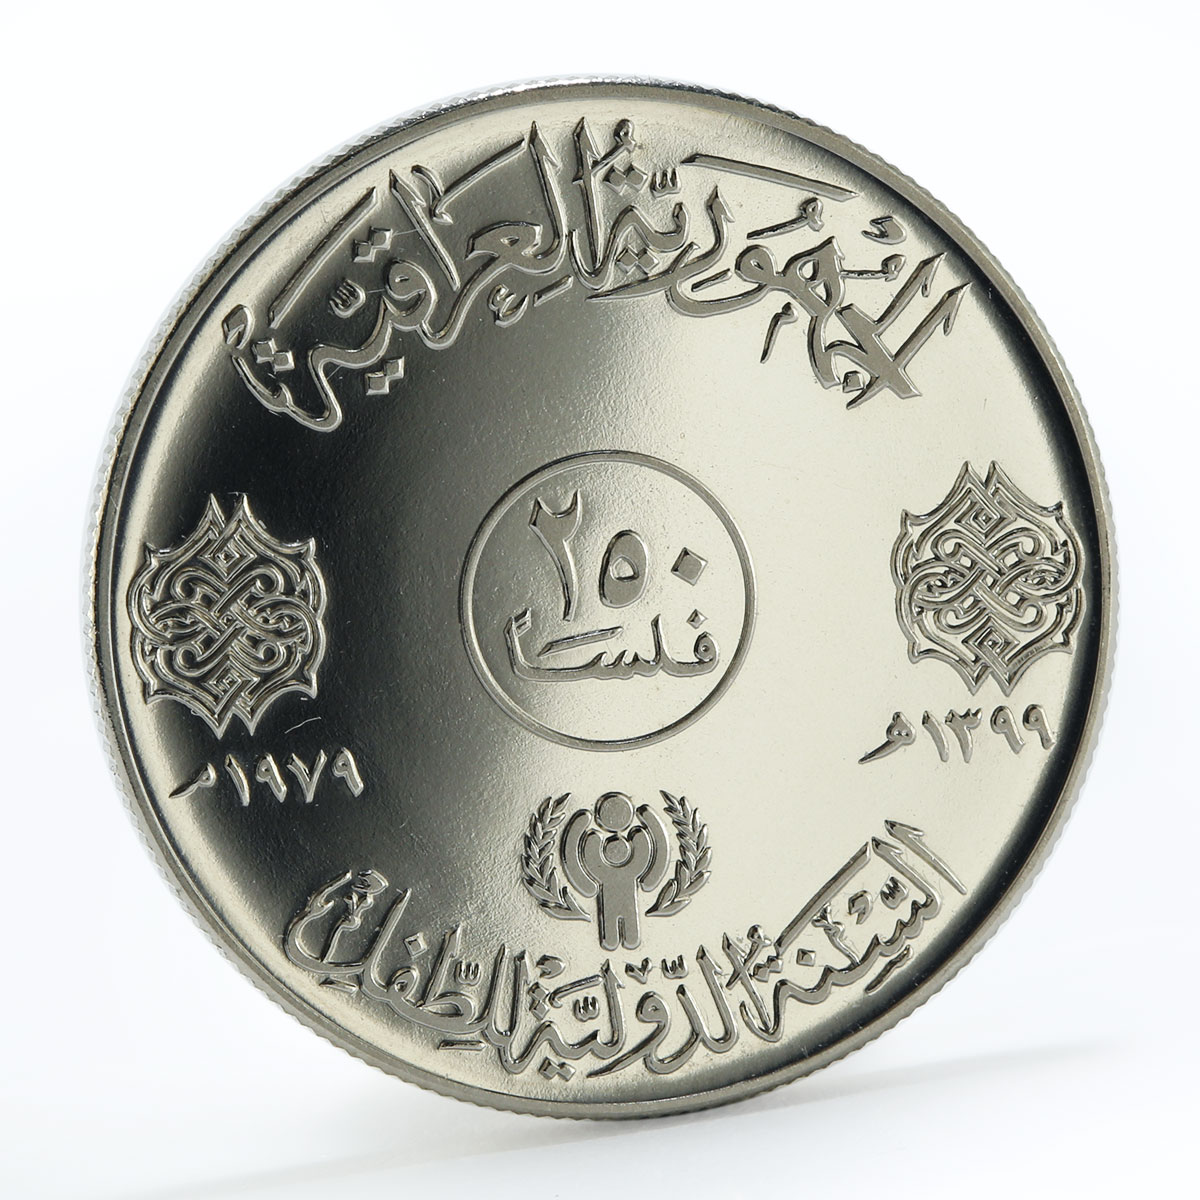 Iraq 250 fils Year of Child proof nickel coin 1979